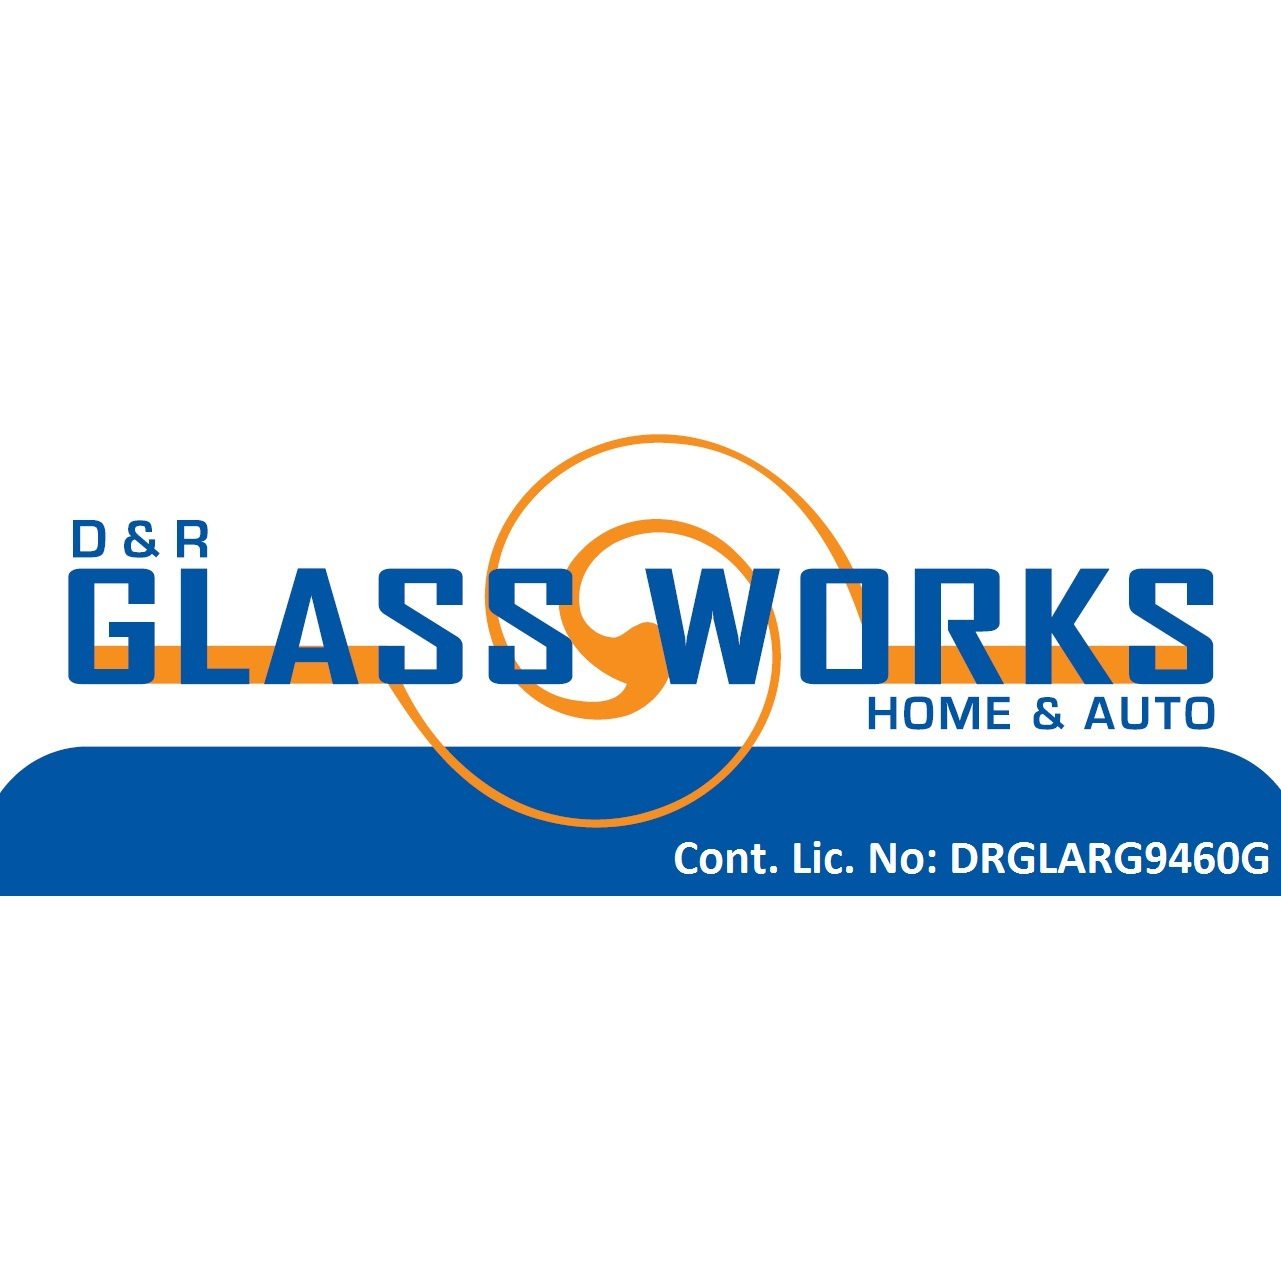 D & R Glass Works